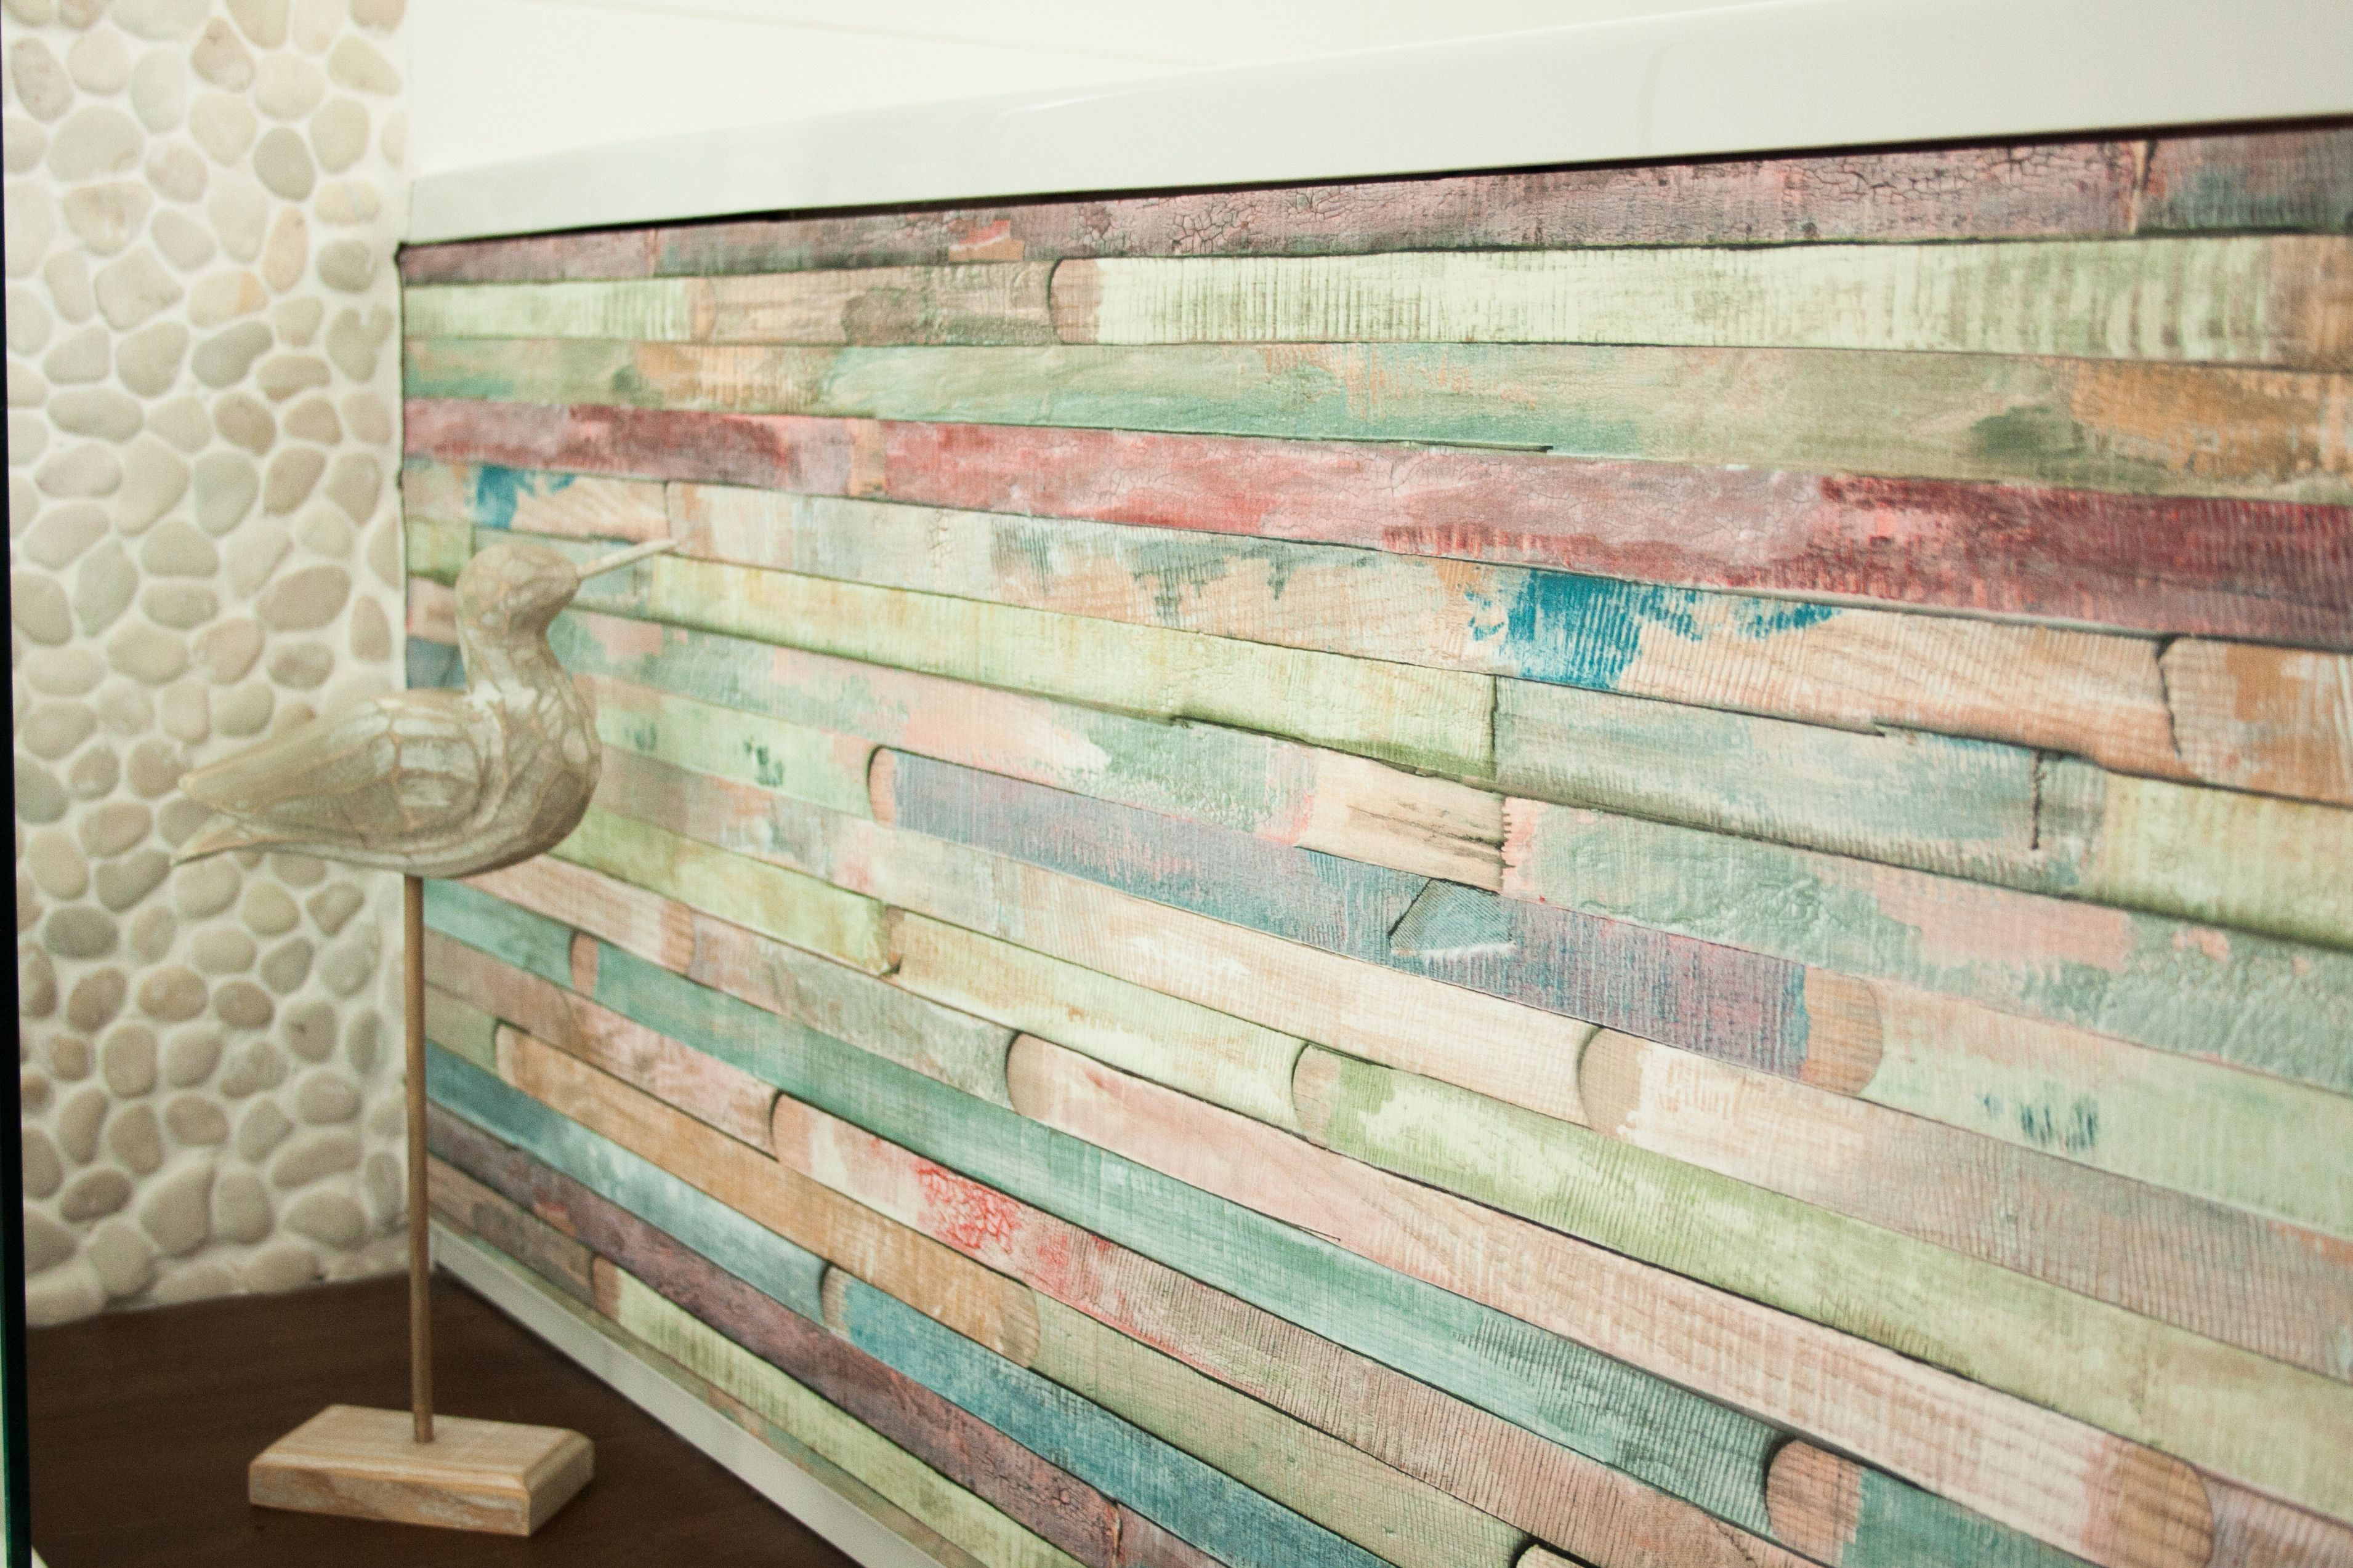 We Hope You Agree That Our Design Rio By D C Fix Looks Fab On This Bath Panel For A Really Beachy Peel And Stick Wallpaper Wood Wallpaper Stick On Wallpaper